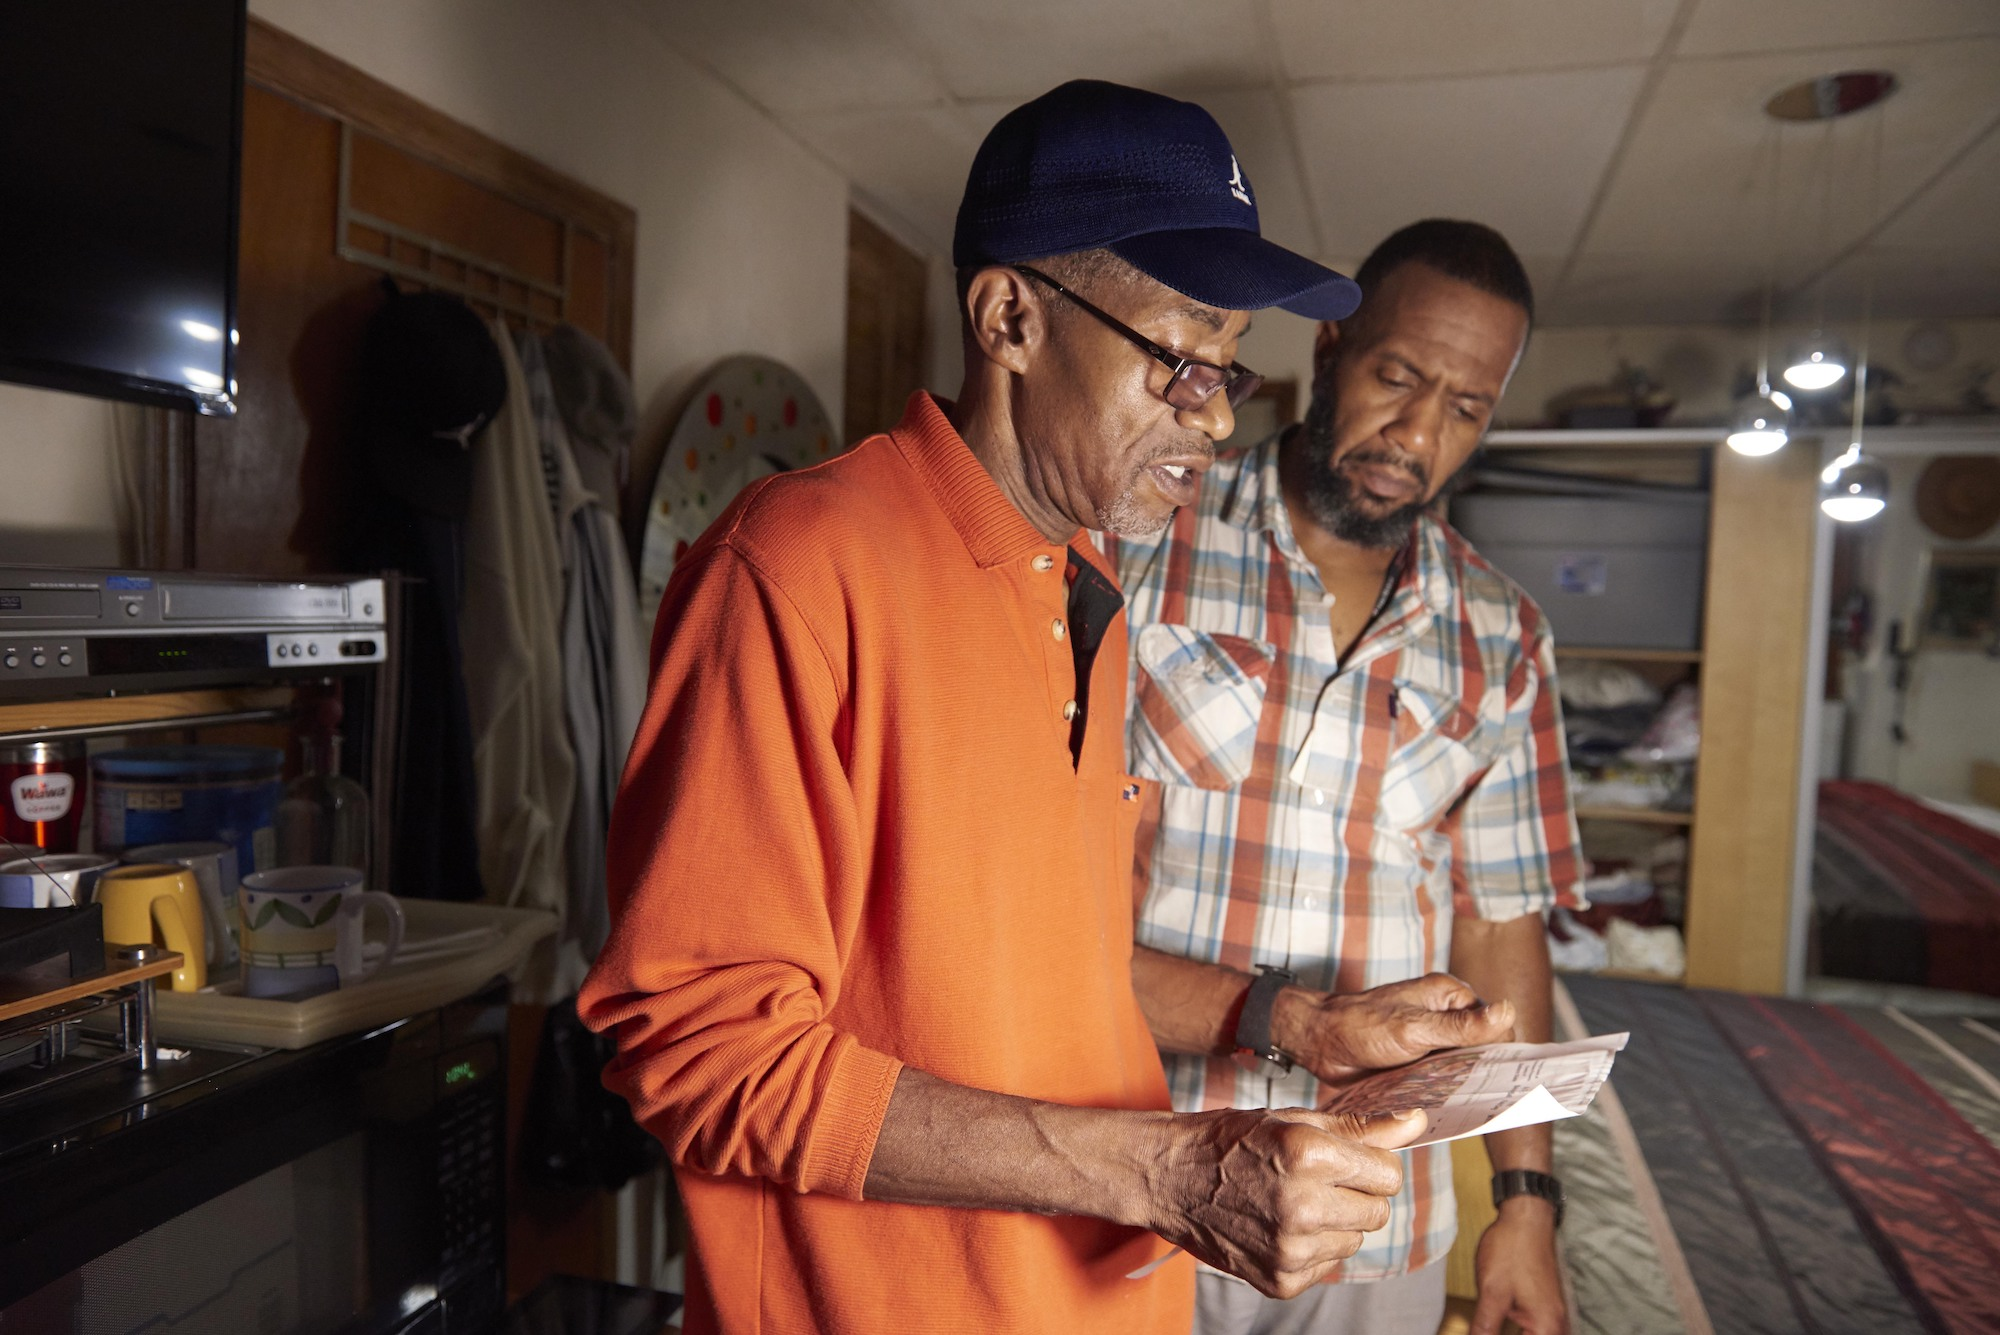 Walter Briggs (right) shows community health worker Orson Brown (left) a high utility bill during a home visit